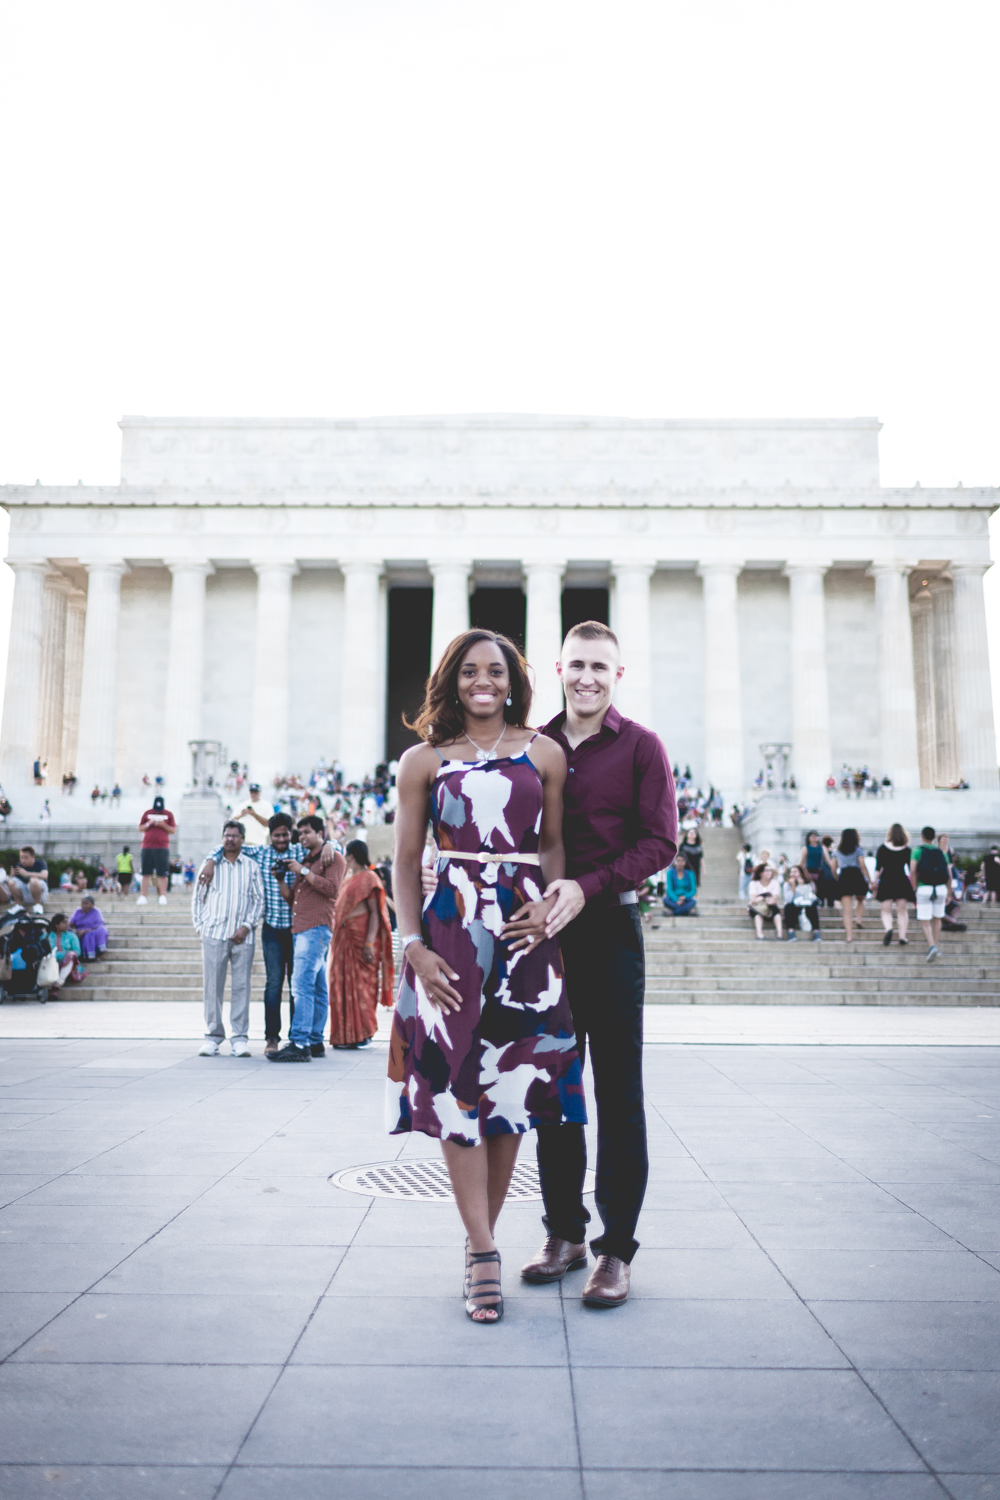 Lincoln Memorial Engagment Photography (5 of 7)